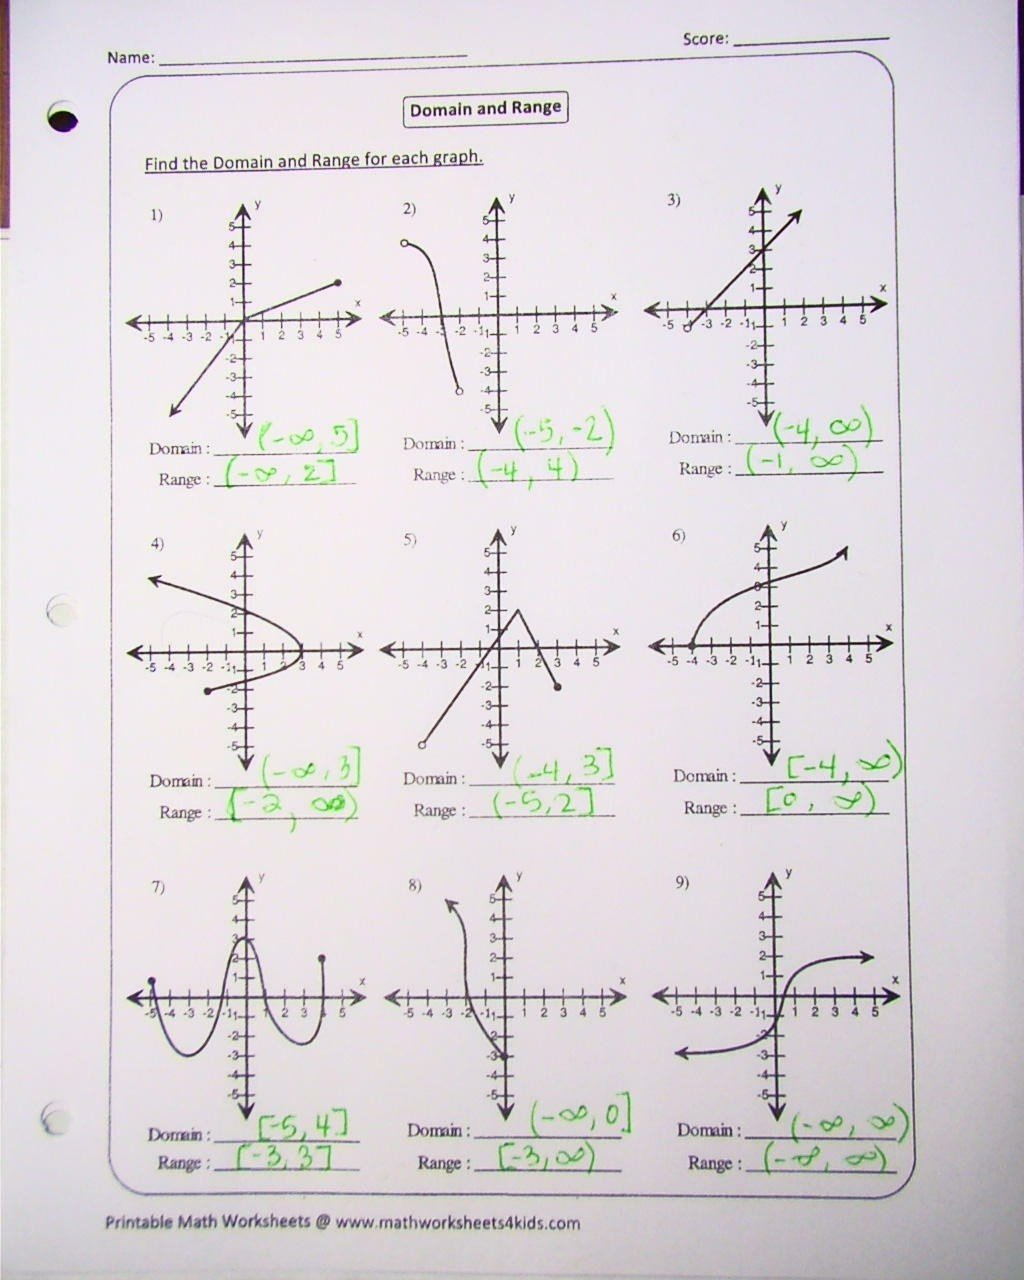 Domain And Range Worksheet 1 Answer Key